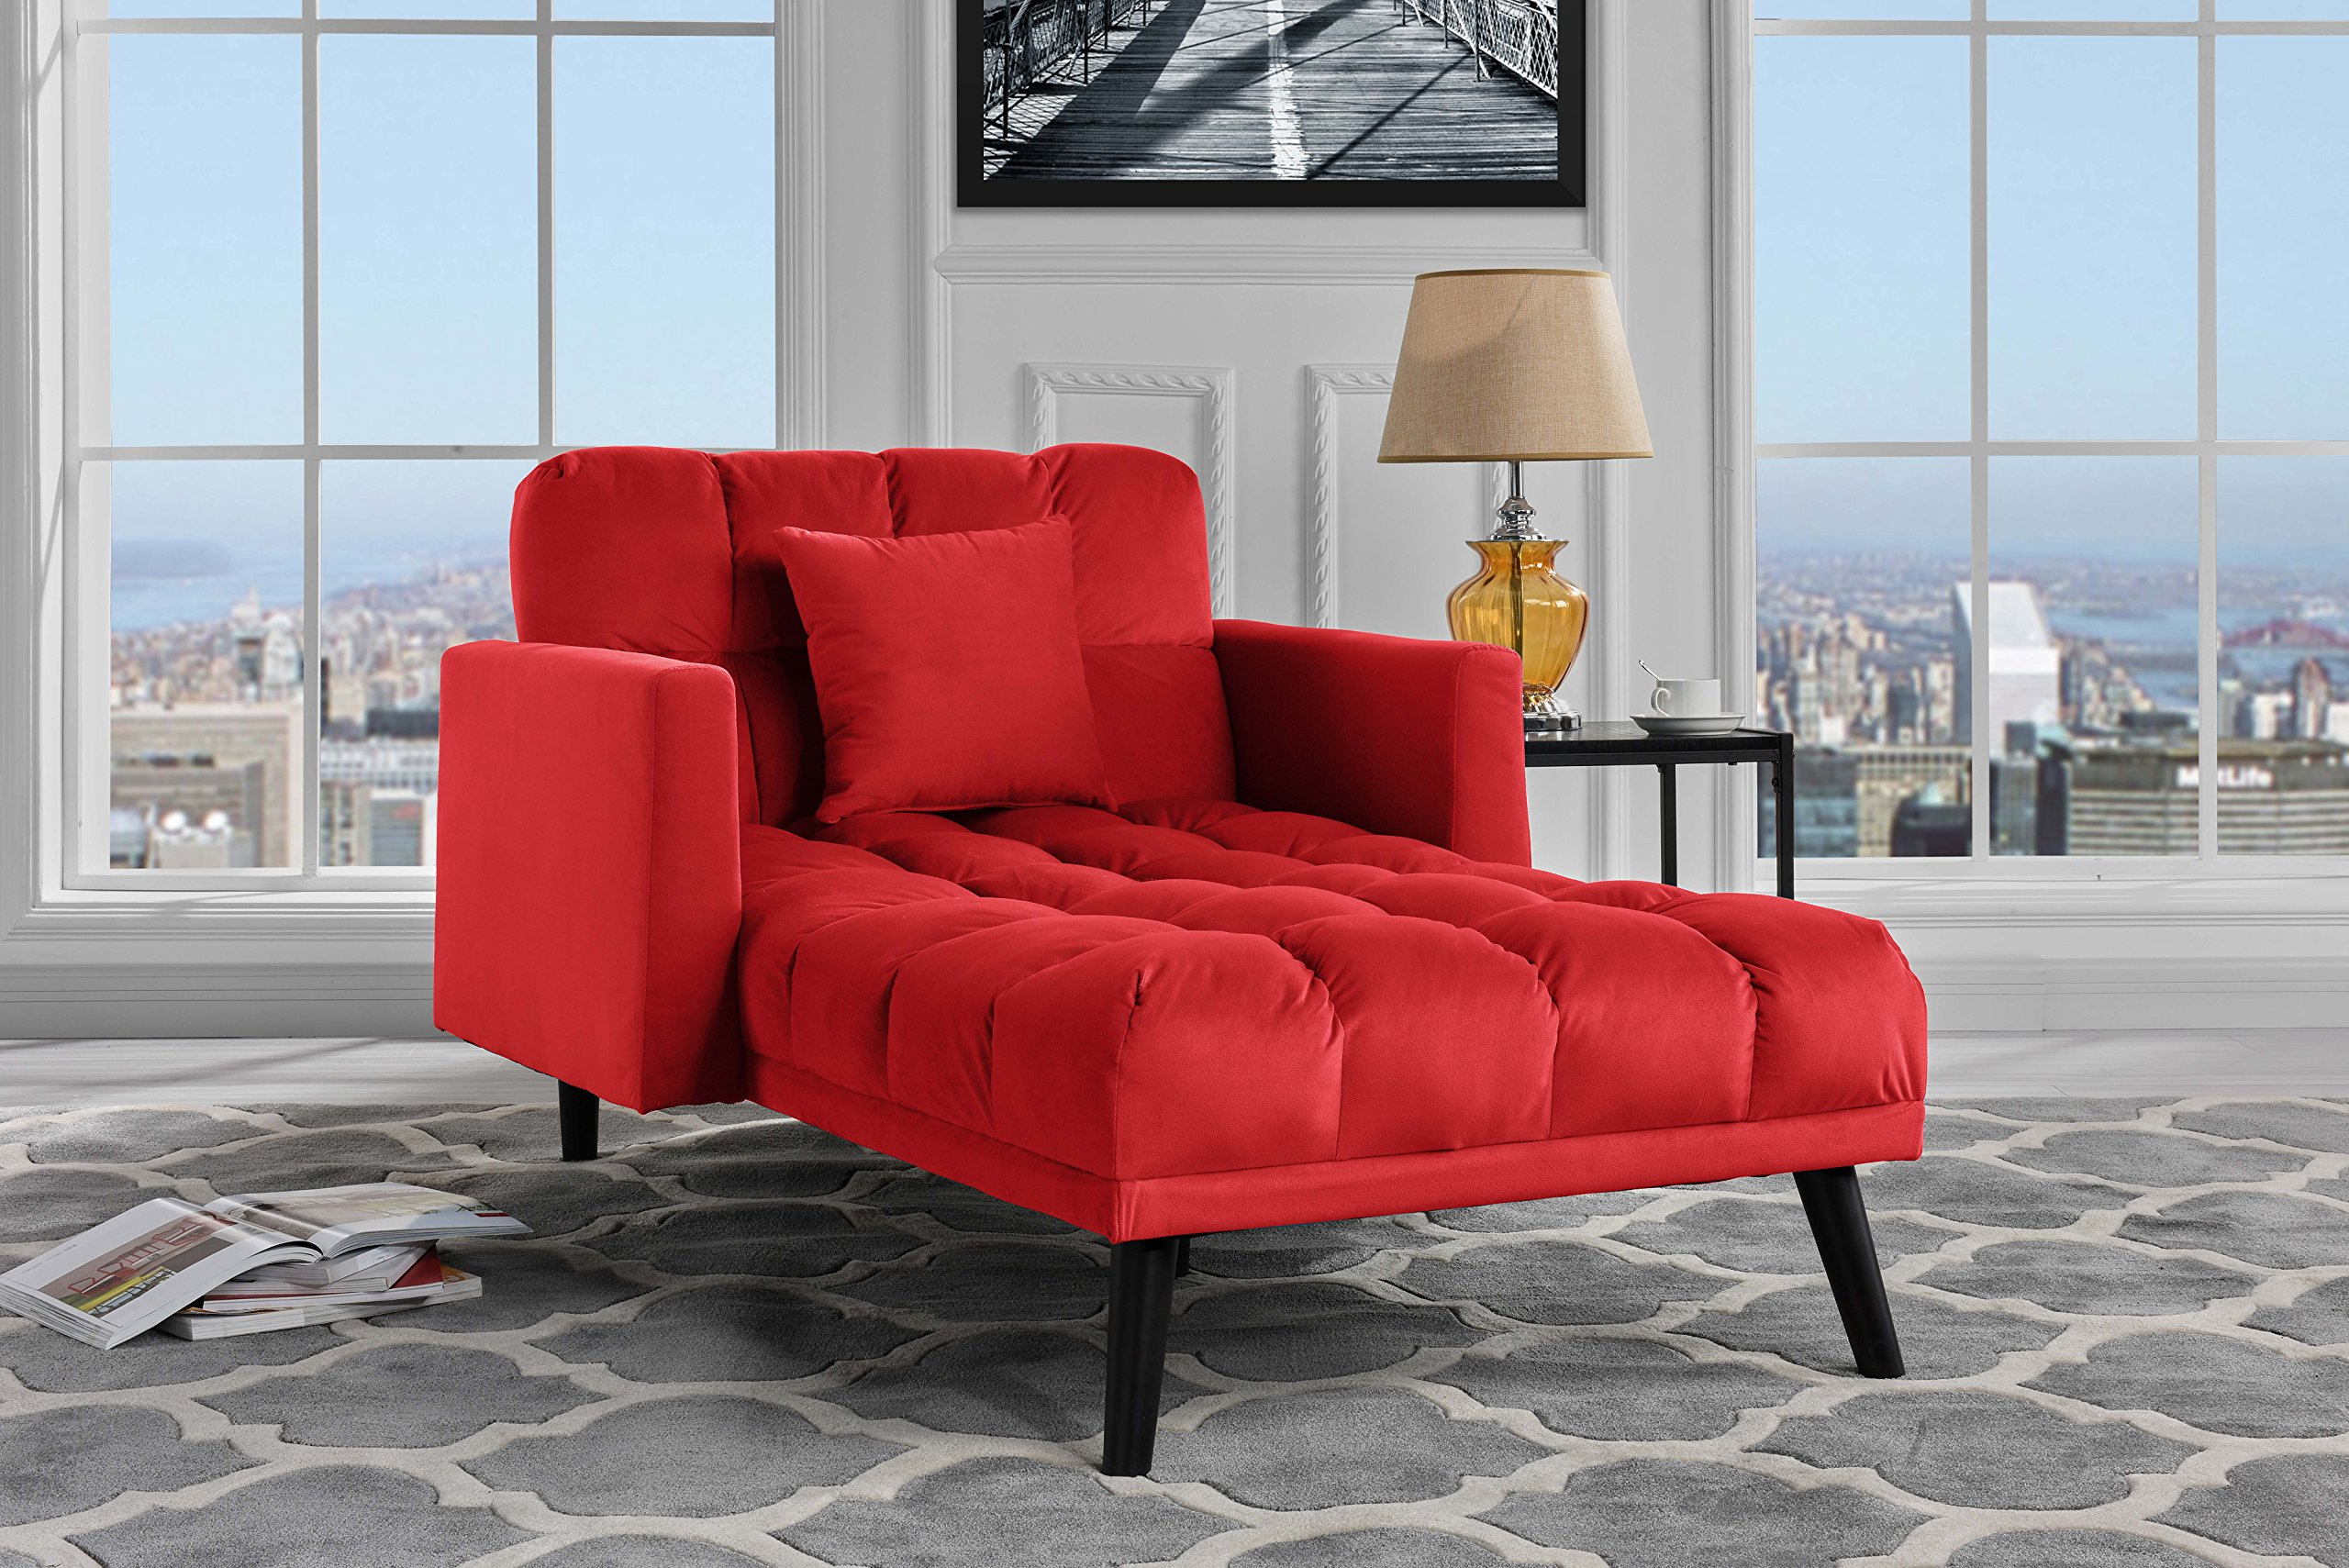 Sofamania Modern Velvet Fabric Recliner Sleeper Chaise Lounge - Futon Sleeper Single Seater with Nailhead Trim (Red) by Sofamania